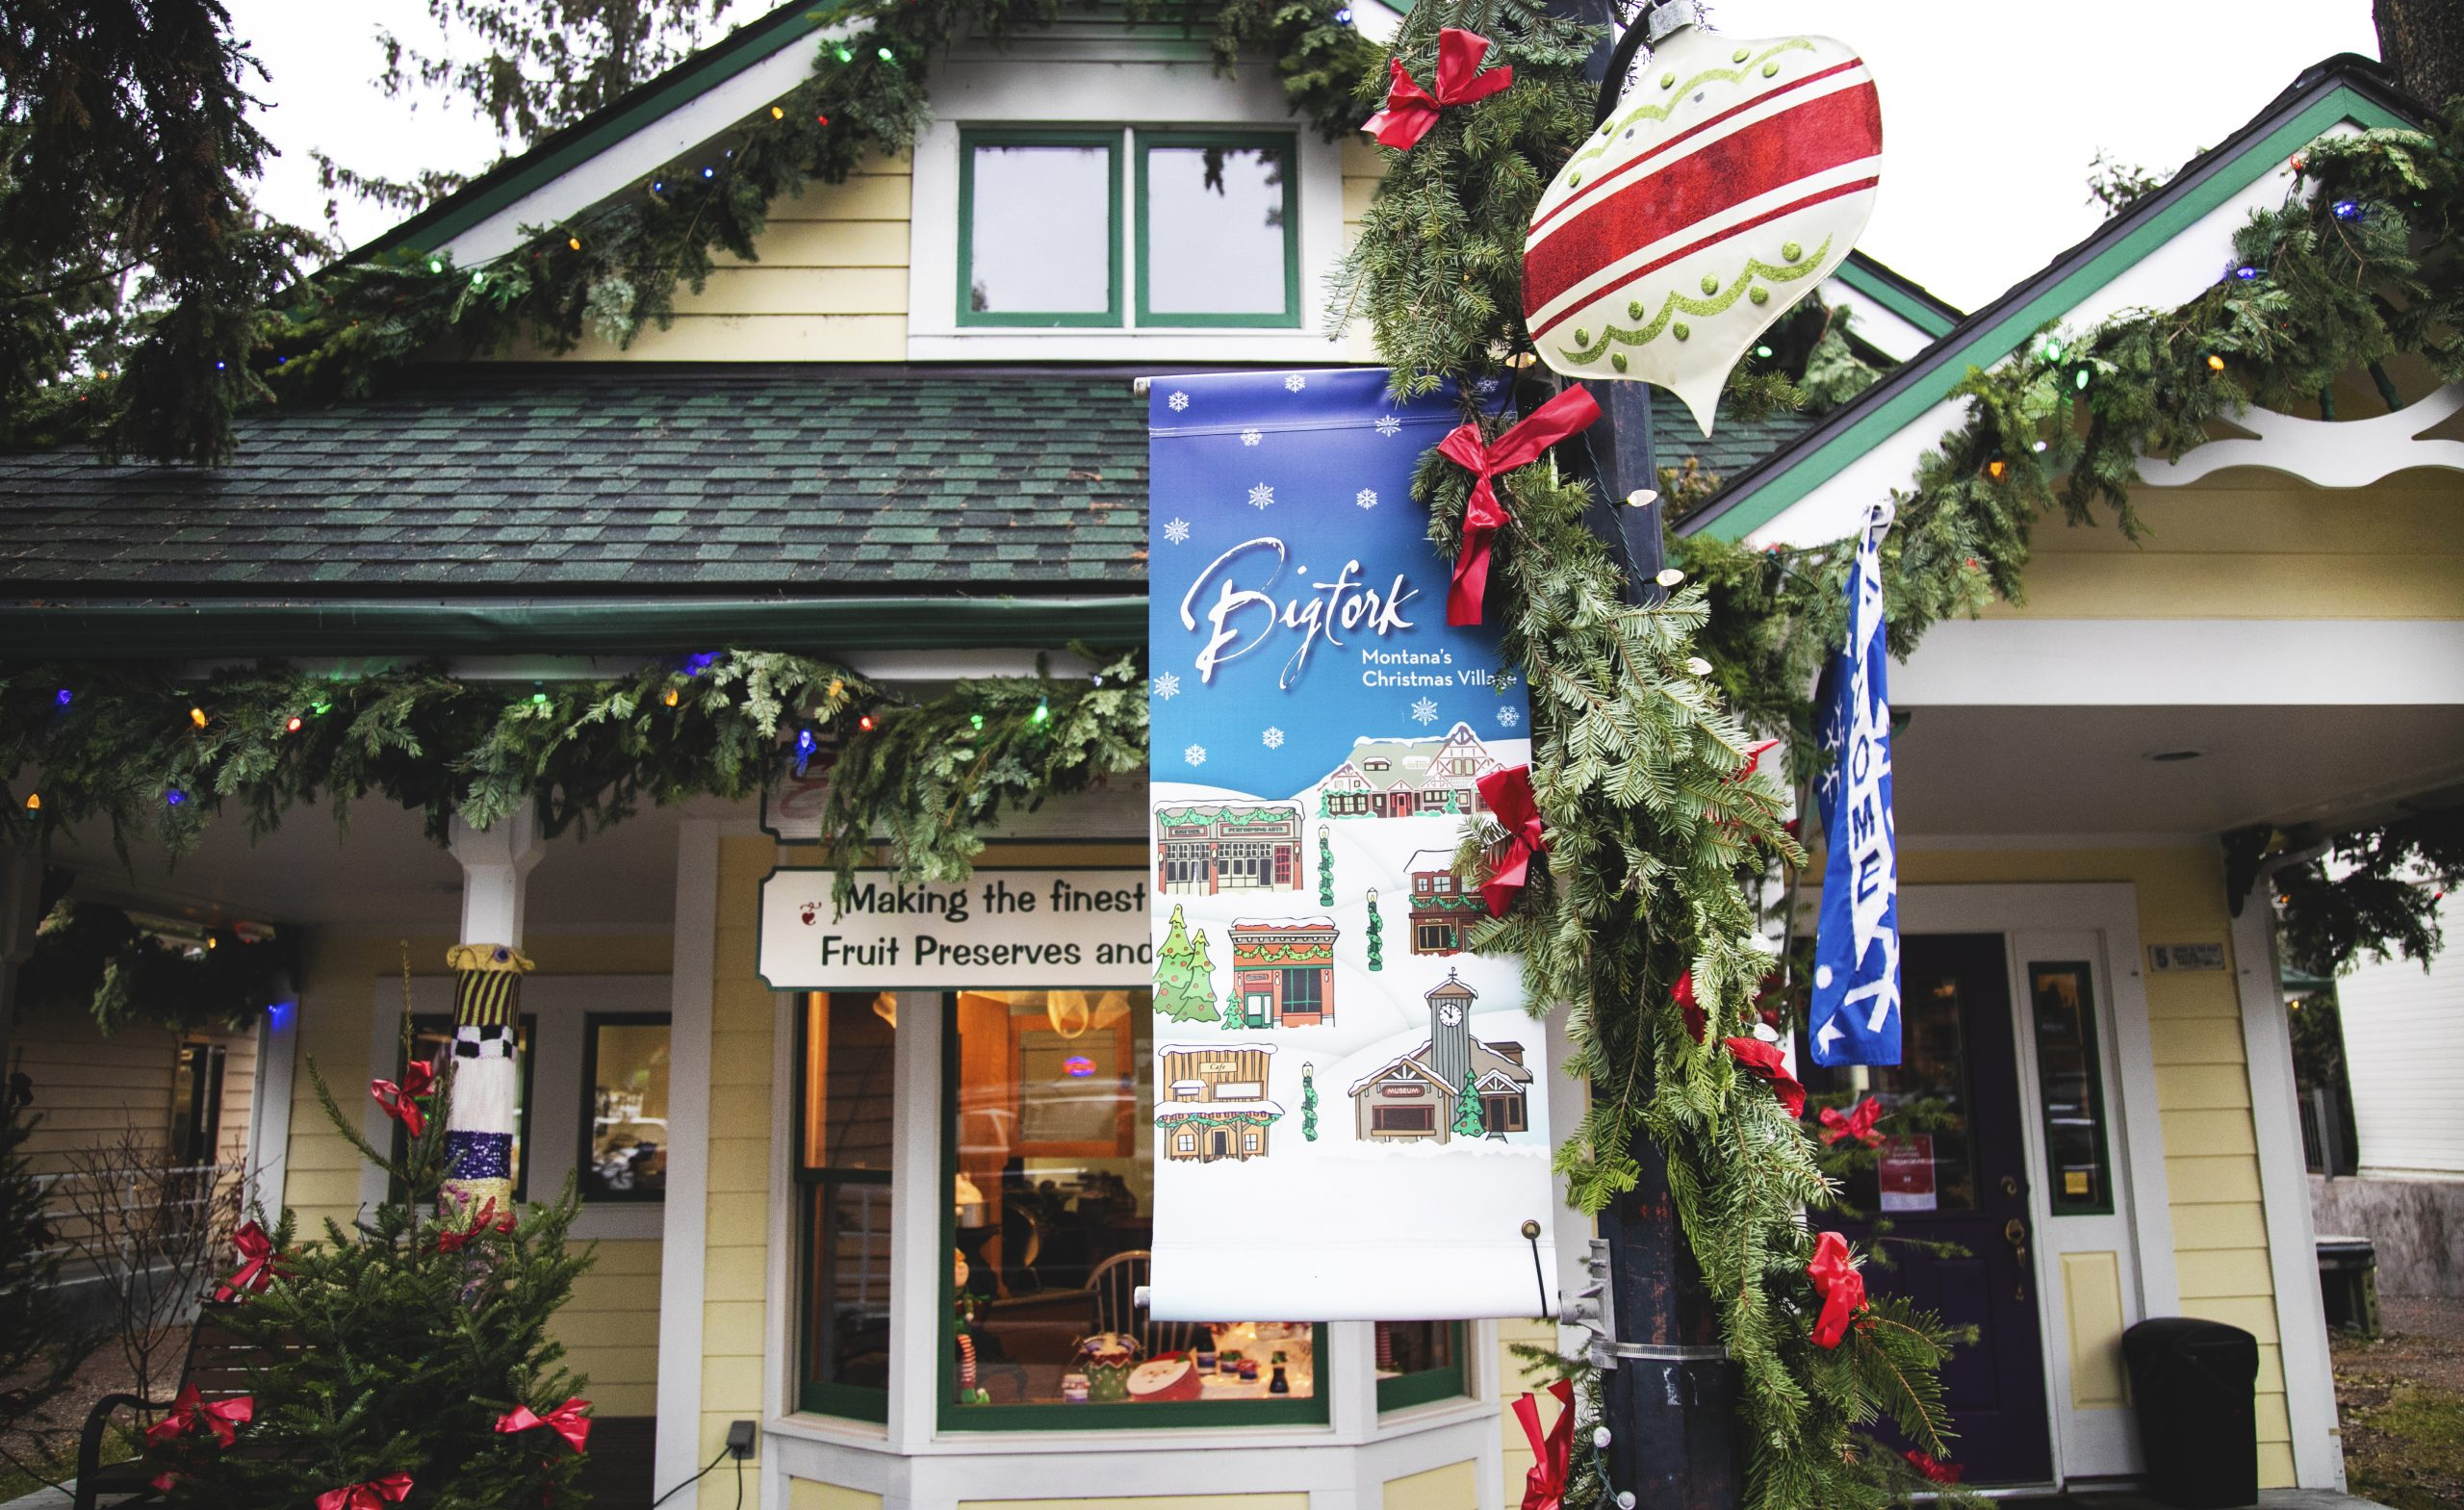 Big Holiday Magic at the Bigfork Christmas Village